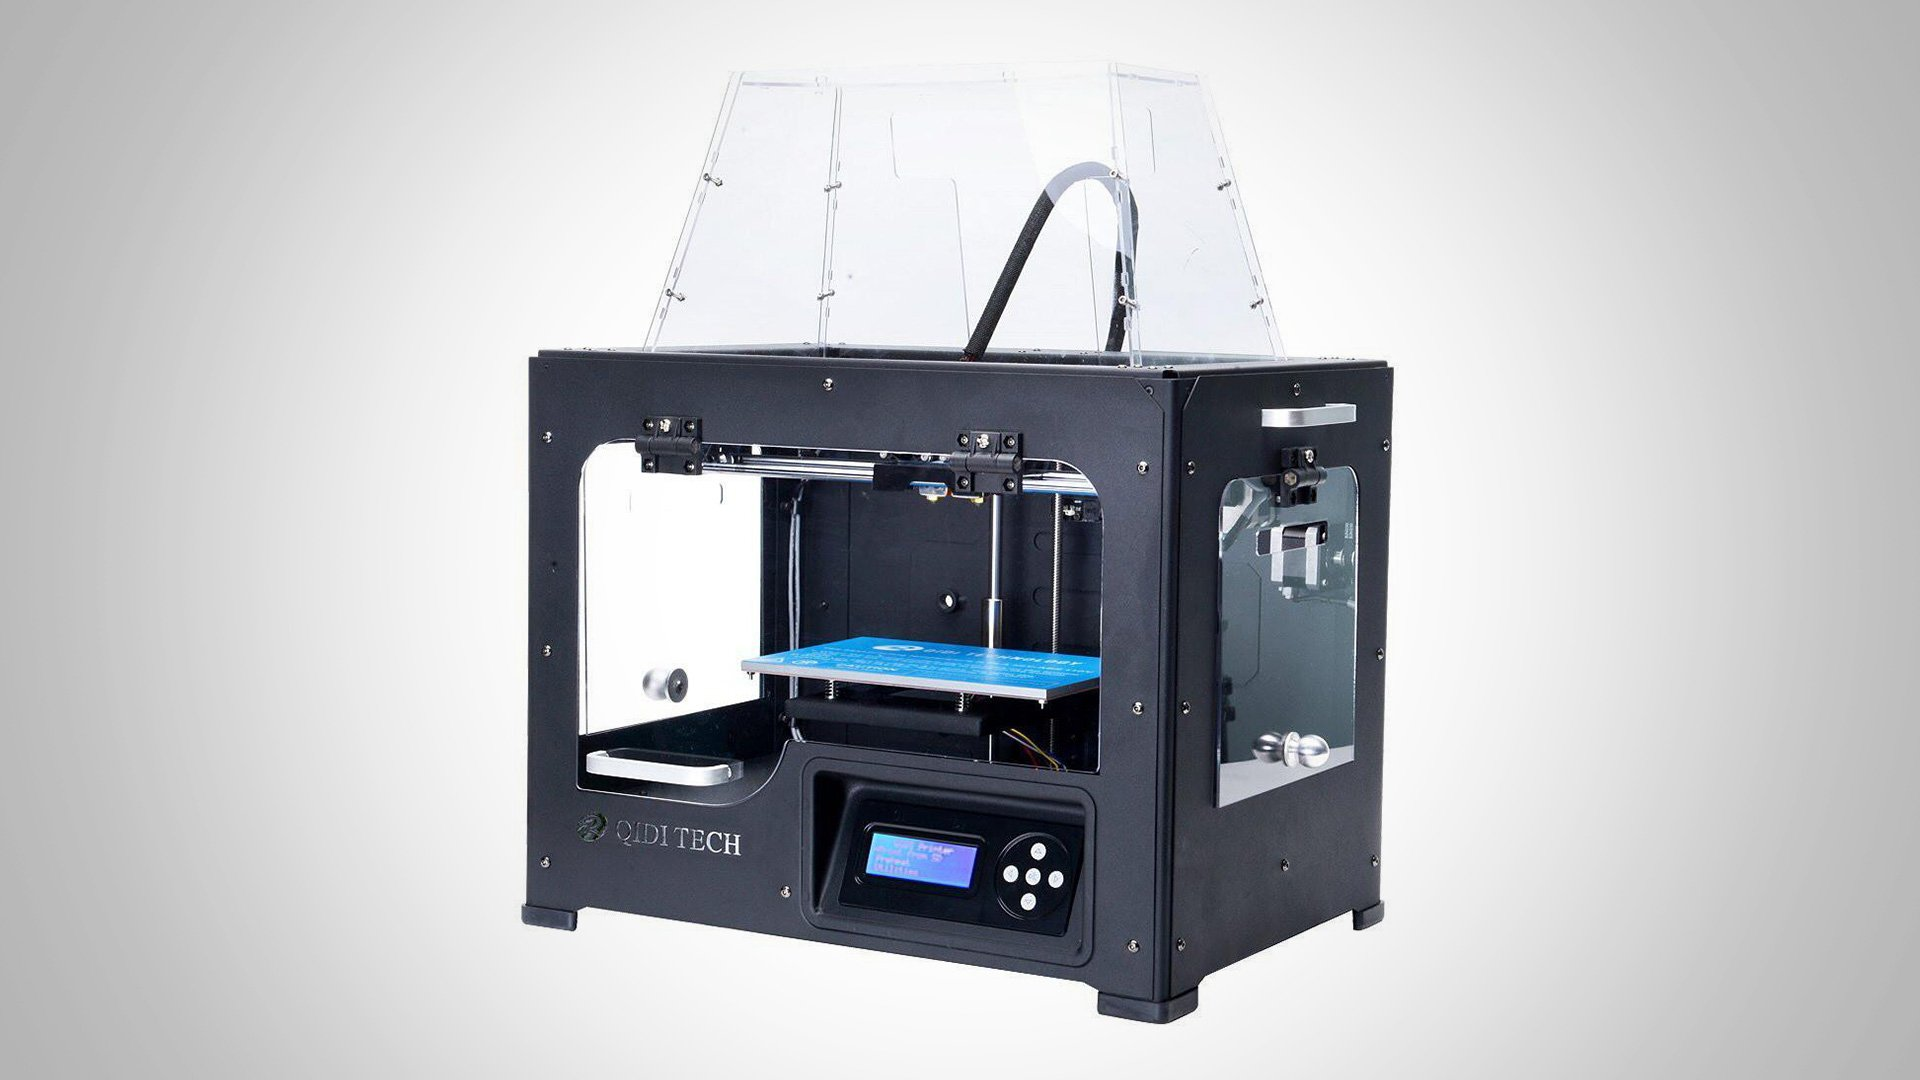 [DEAL] Qidi Tech 1 Dual Extrusion 3D Printer, 13% Off at $610 | All3DP